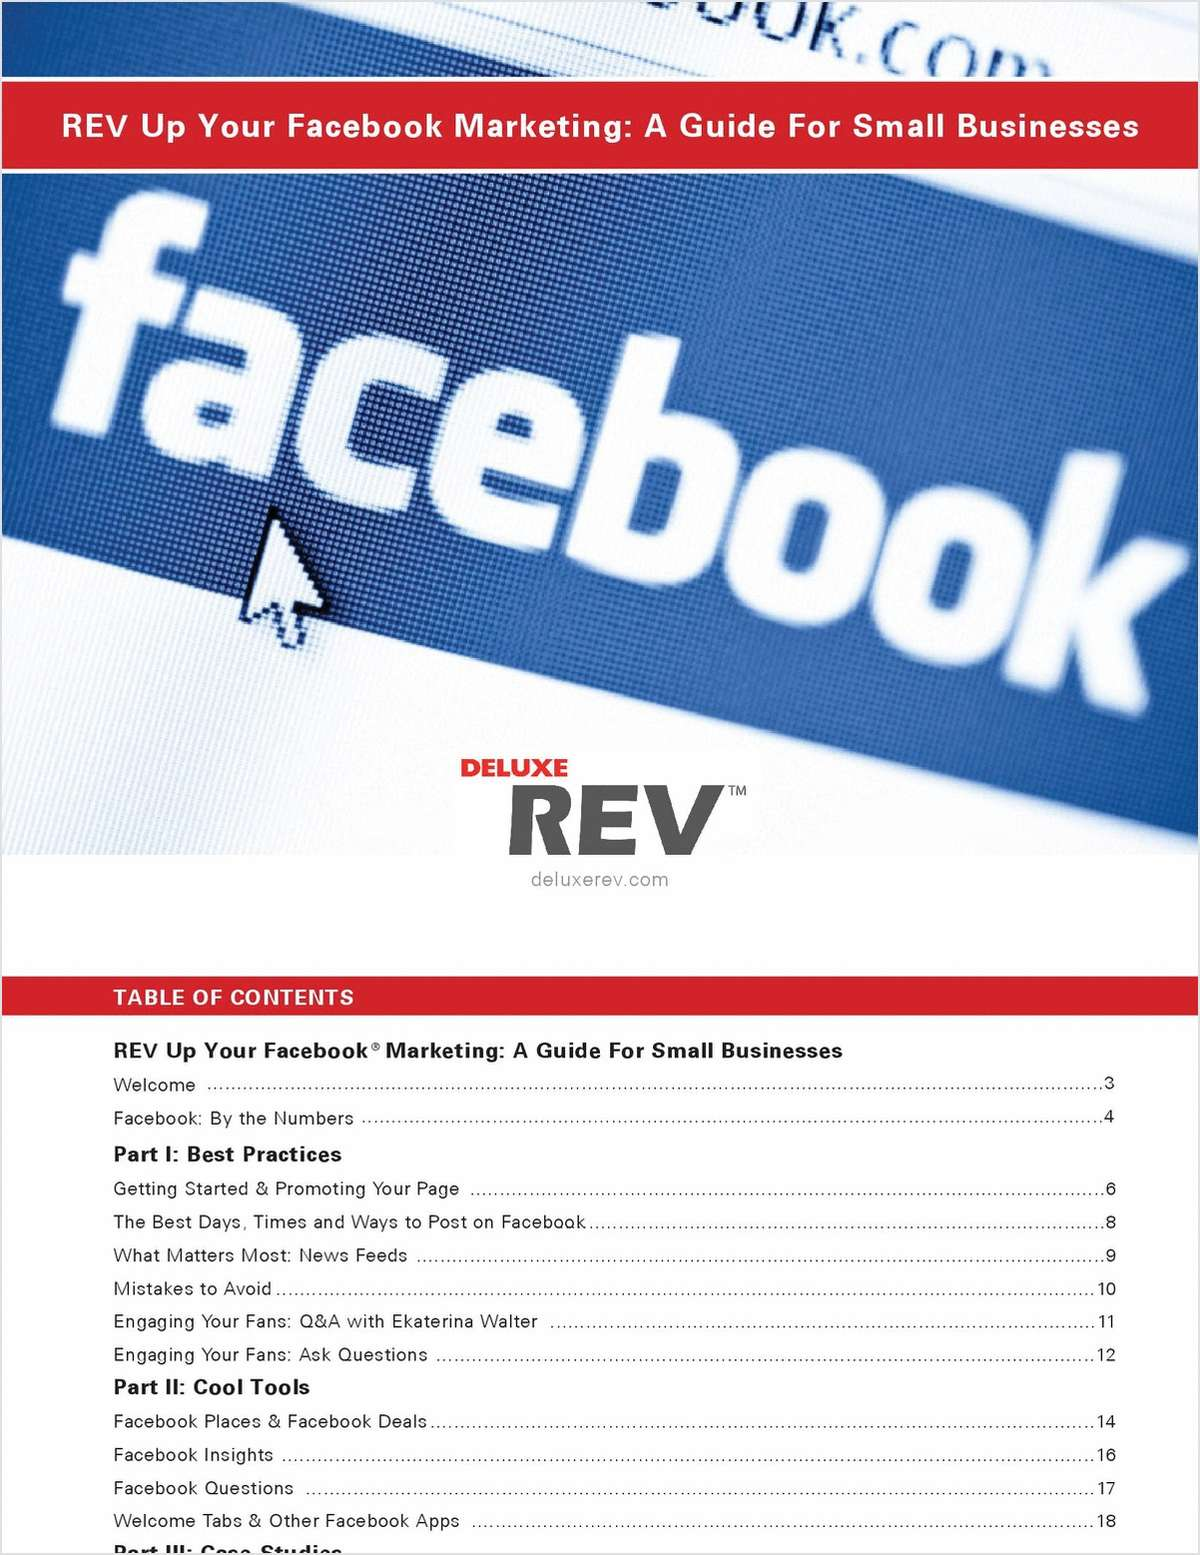 REV Up Your Facebook Marketing: A Guide For Small Businesses